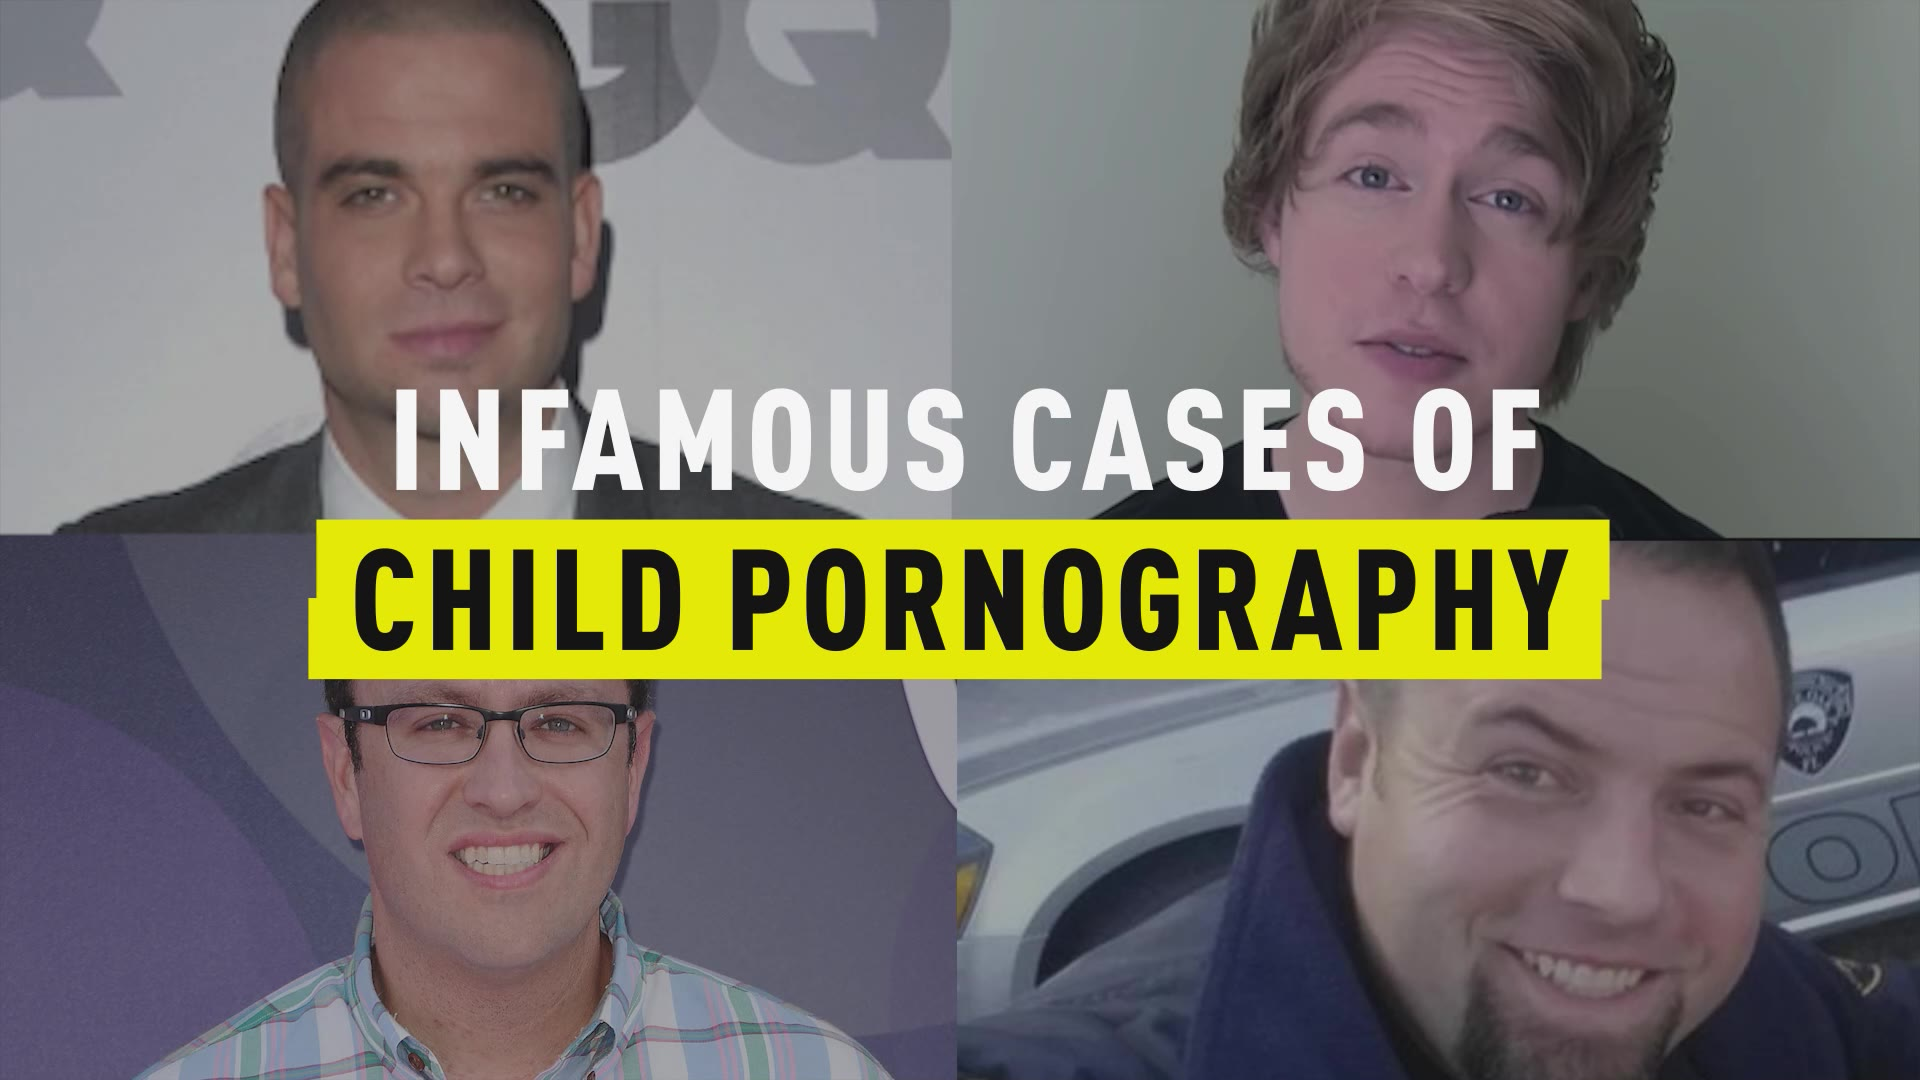 Infamous Cases of Child Pornography